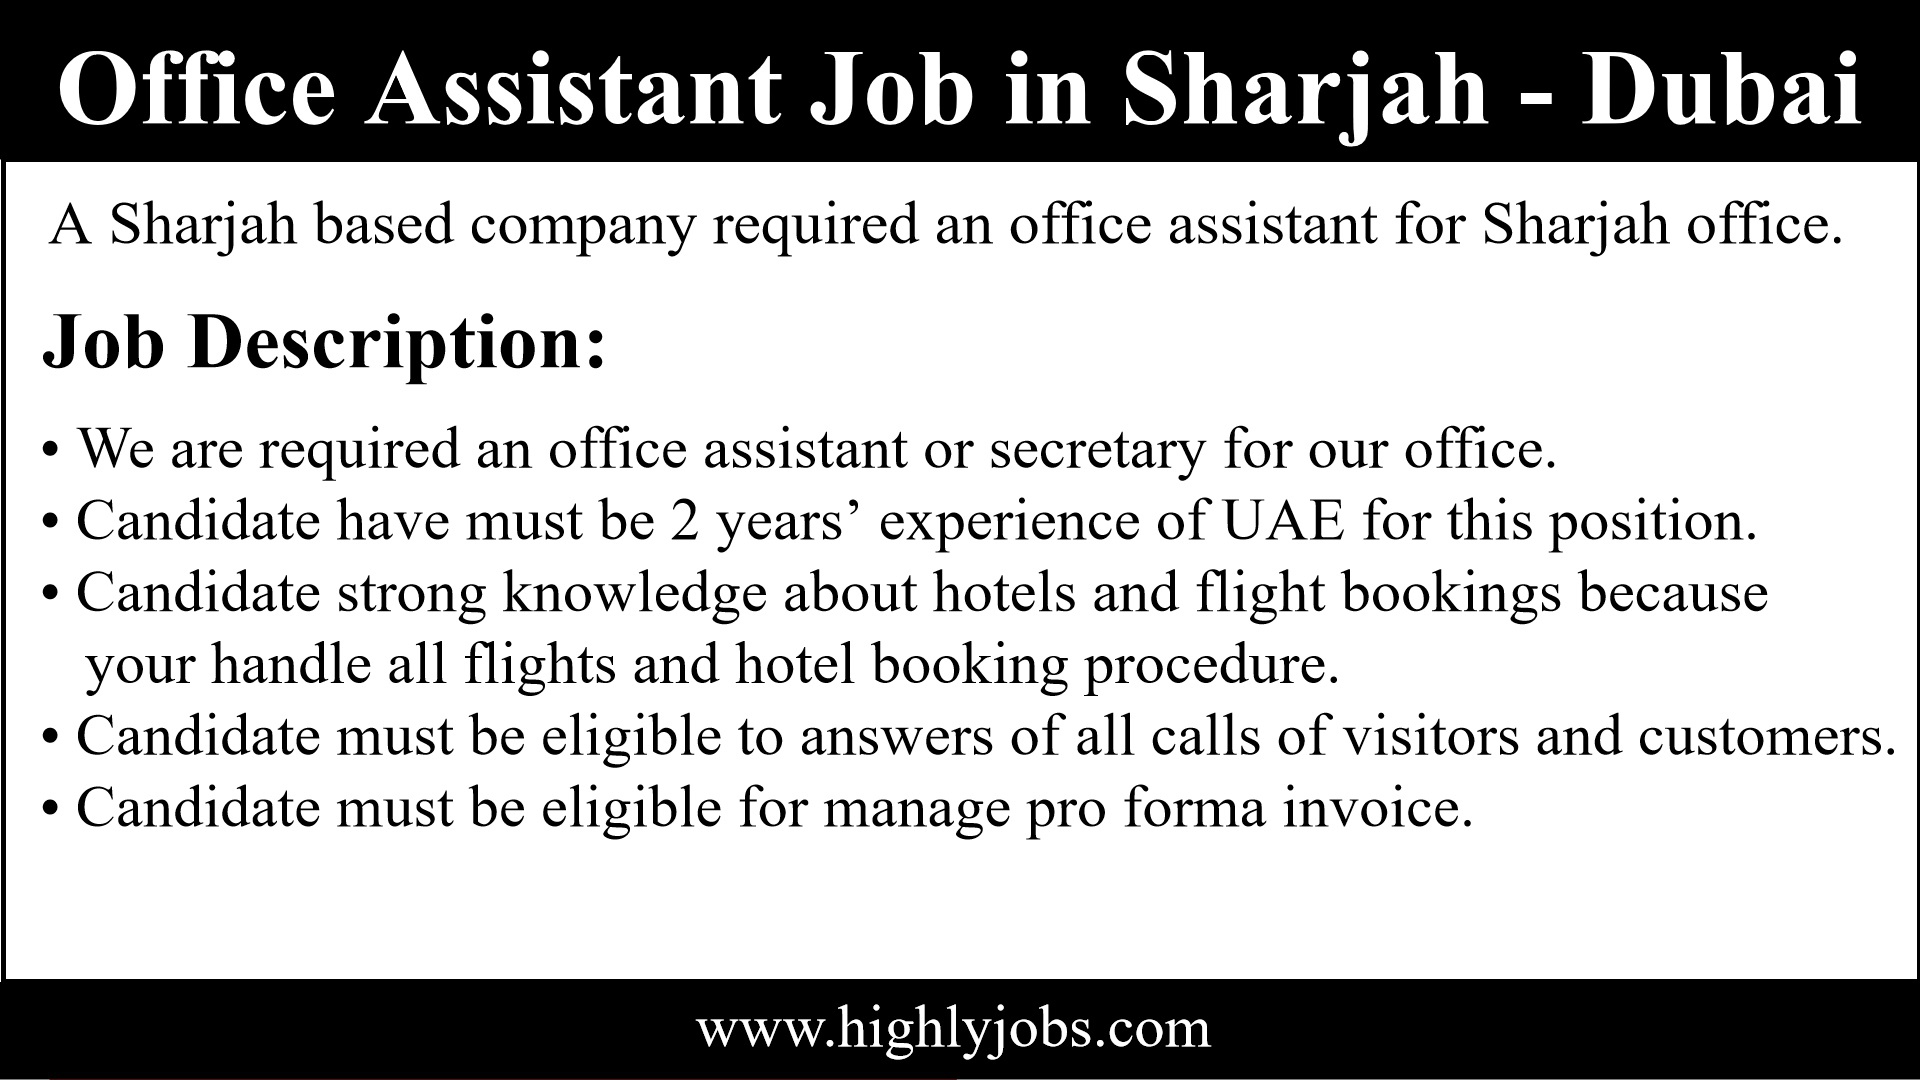 Office Assistant Job in Sharjah | Highlyjobs